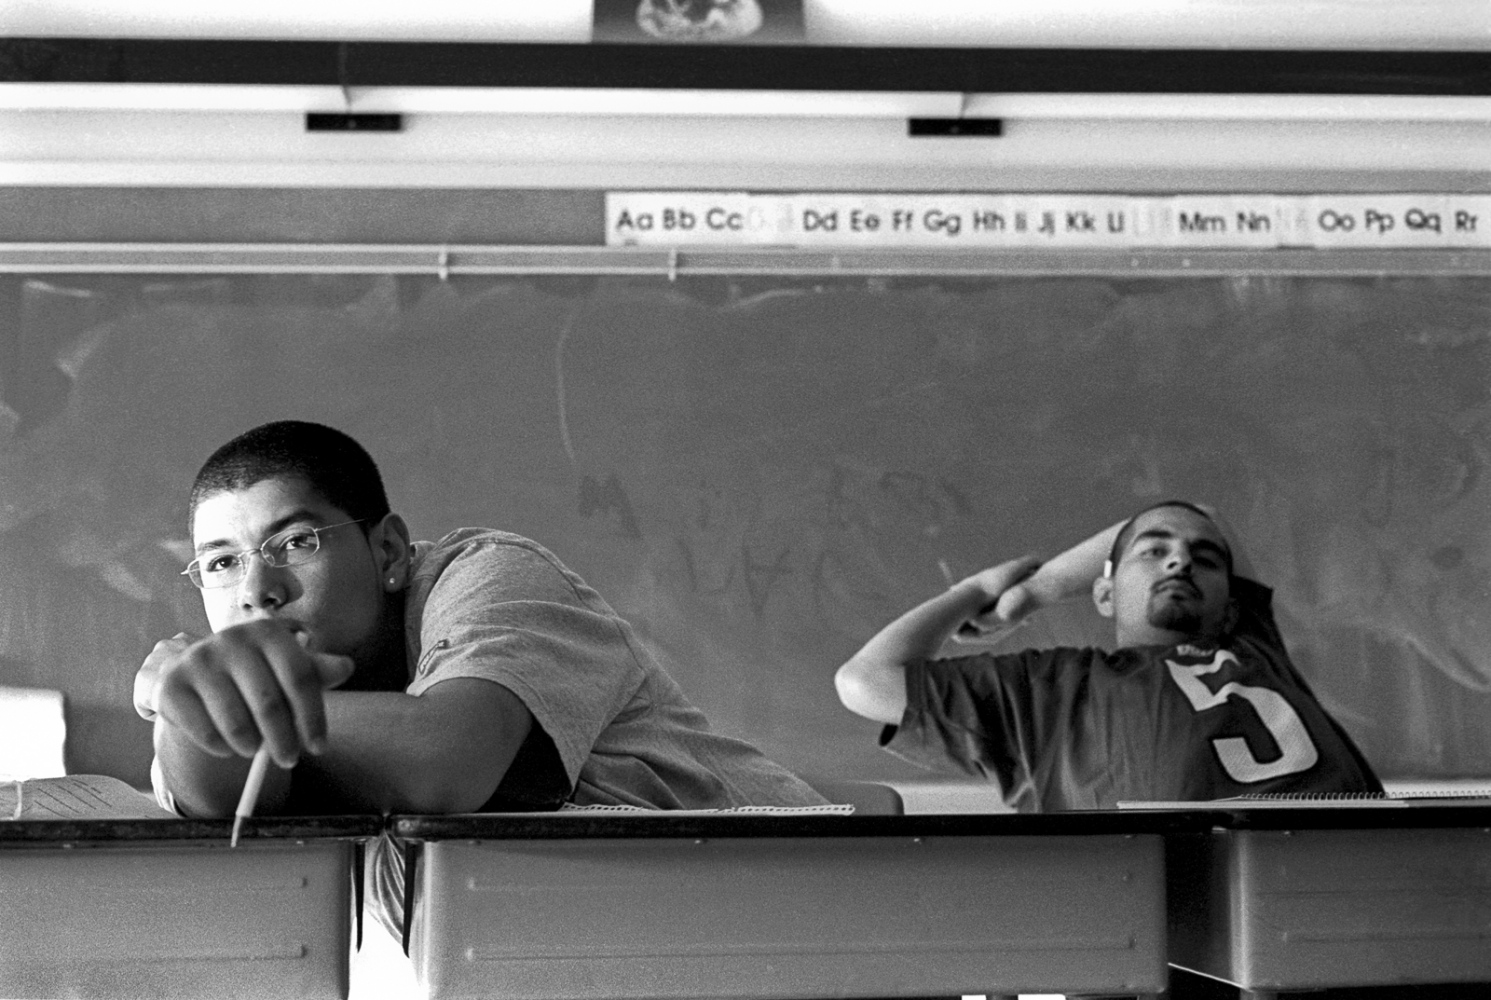 Salvador and Joe in social studies class at Second Chance High School.